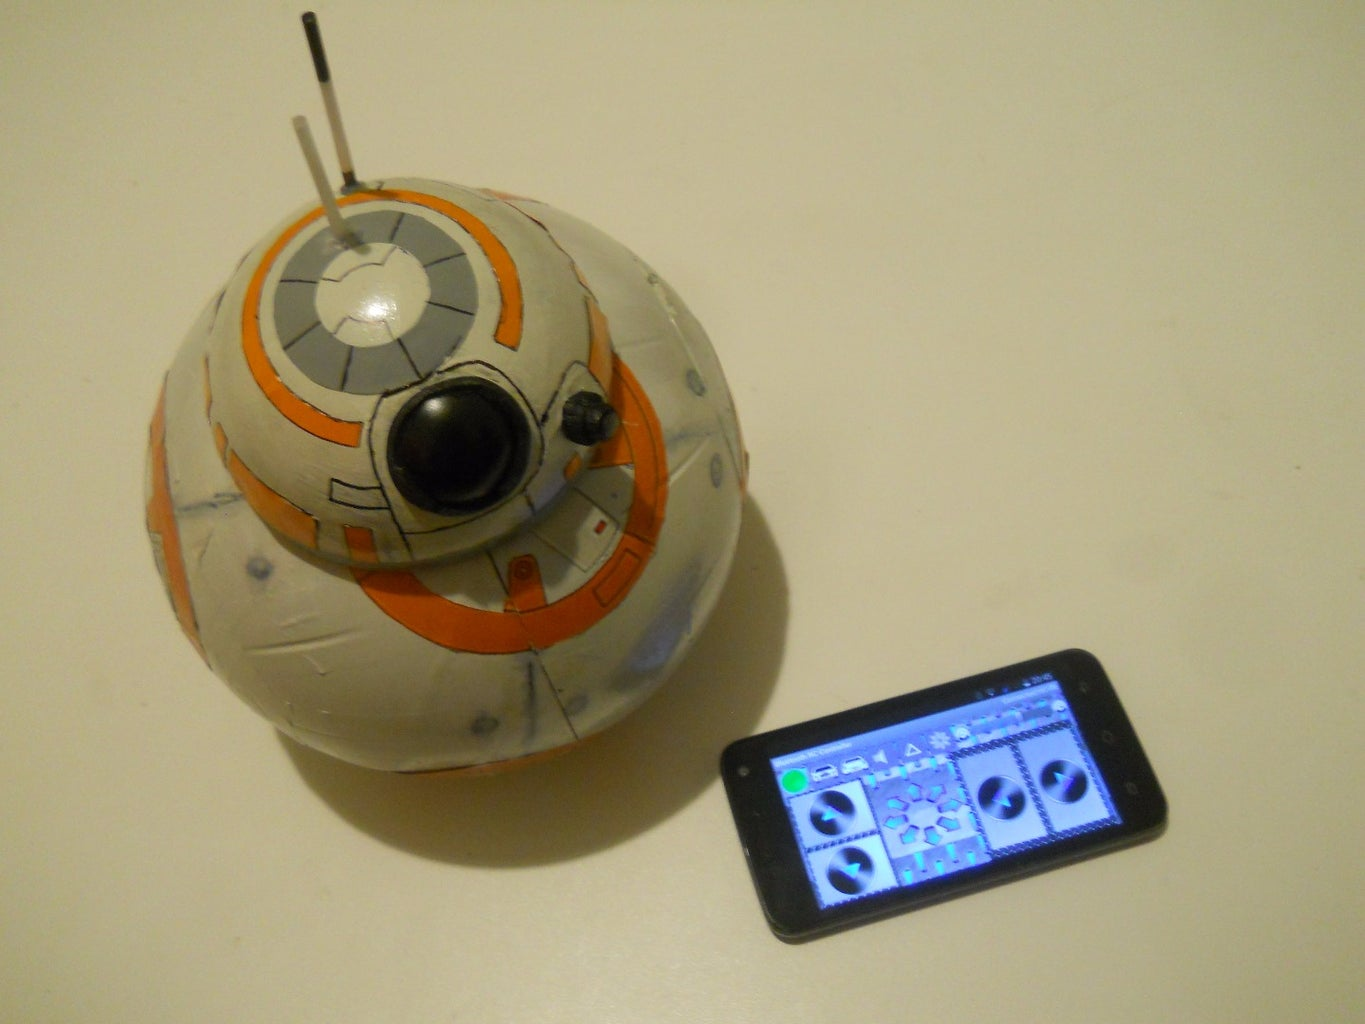 This Is Droid You Are Looking For!